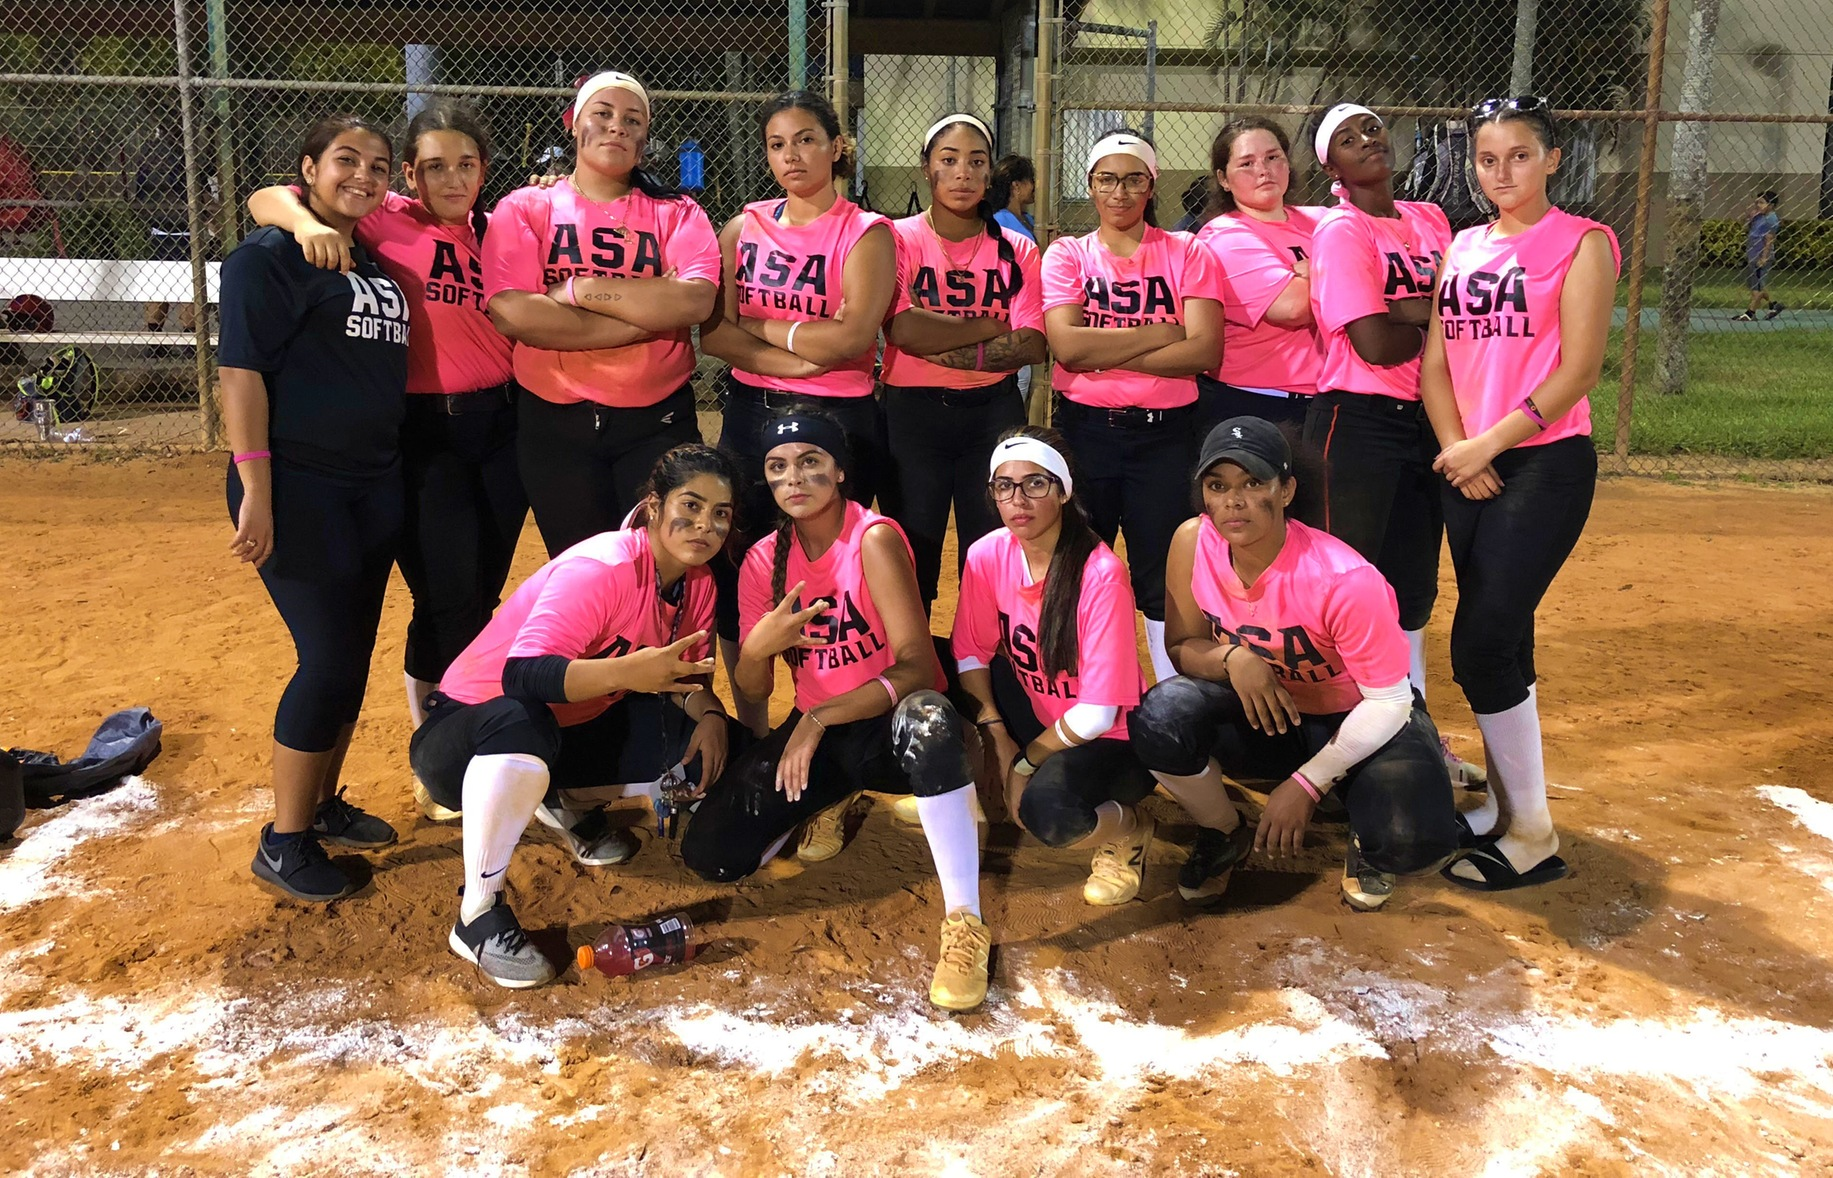 ASA Softball Wins First Ever Scrimmage, Tops Gold Coast 18-6